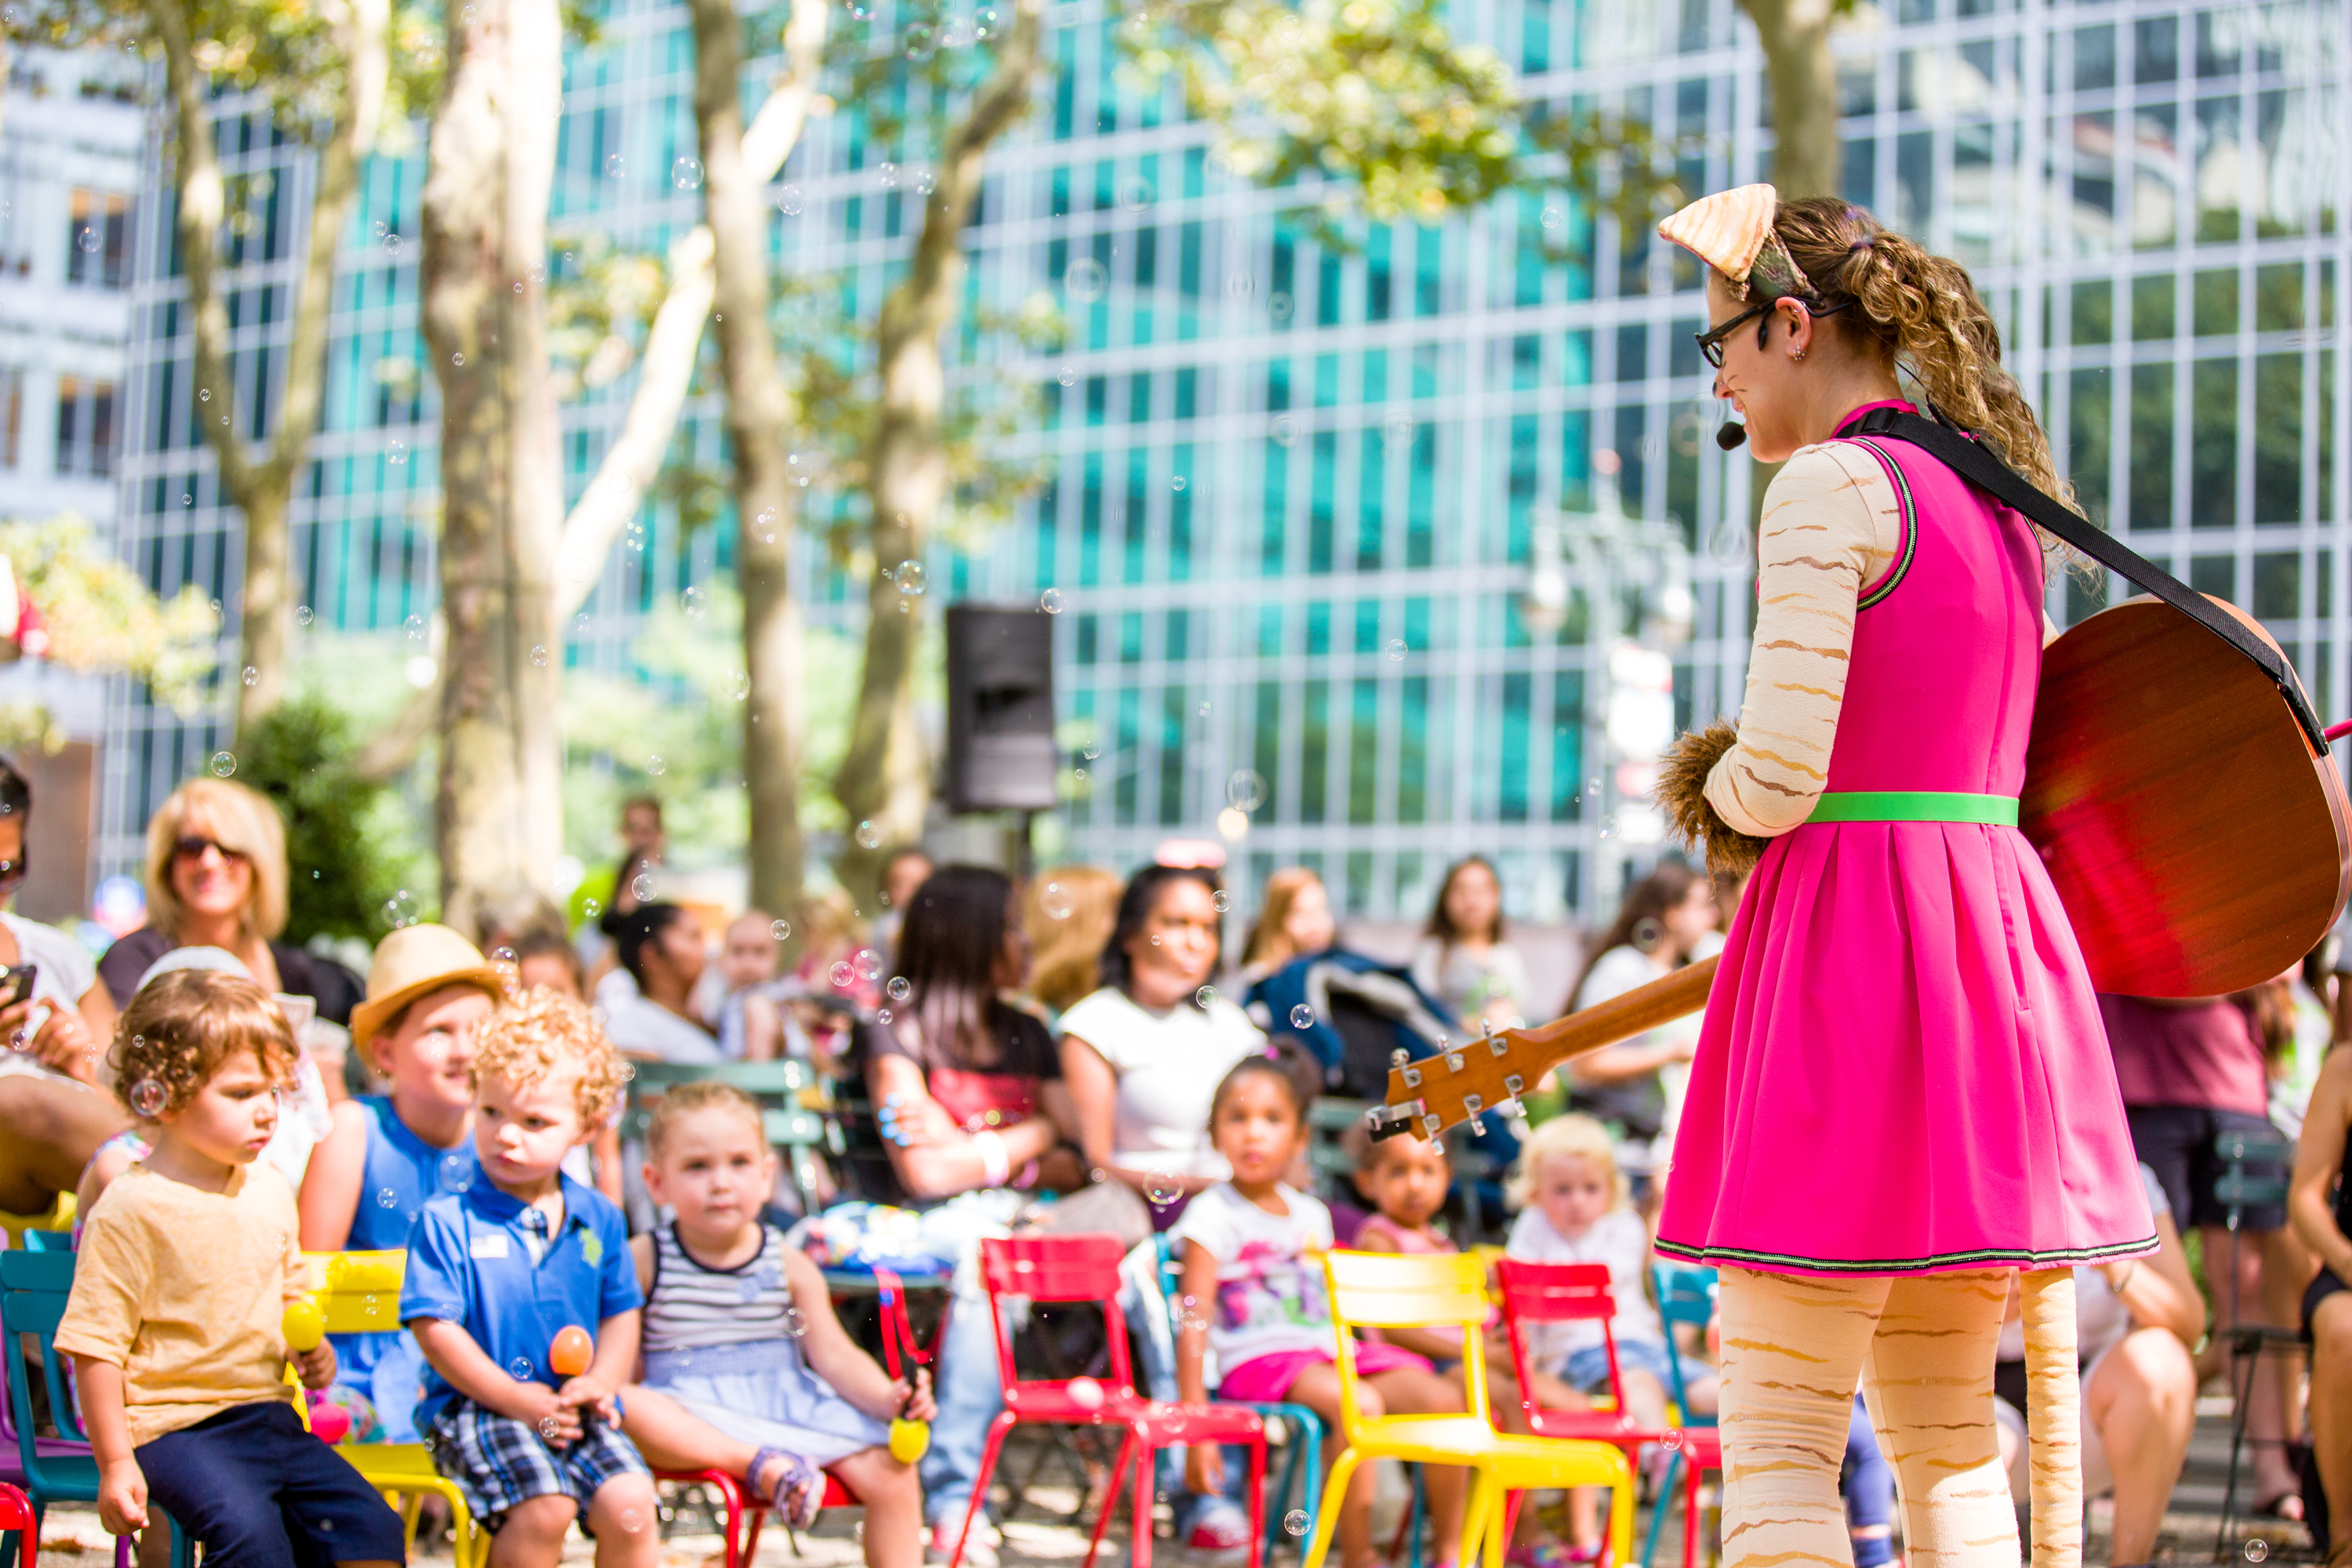 August events calendar for kids and families in new york city for Nyc kids activities today